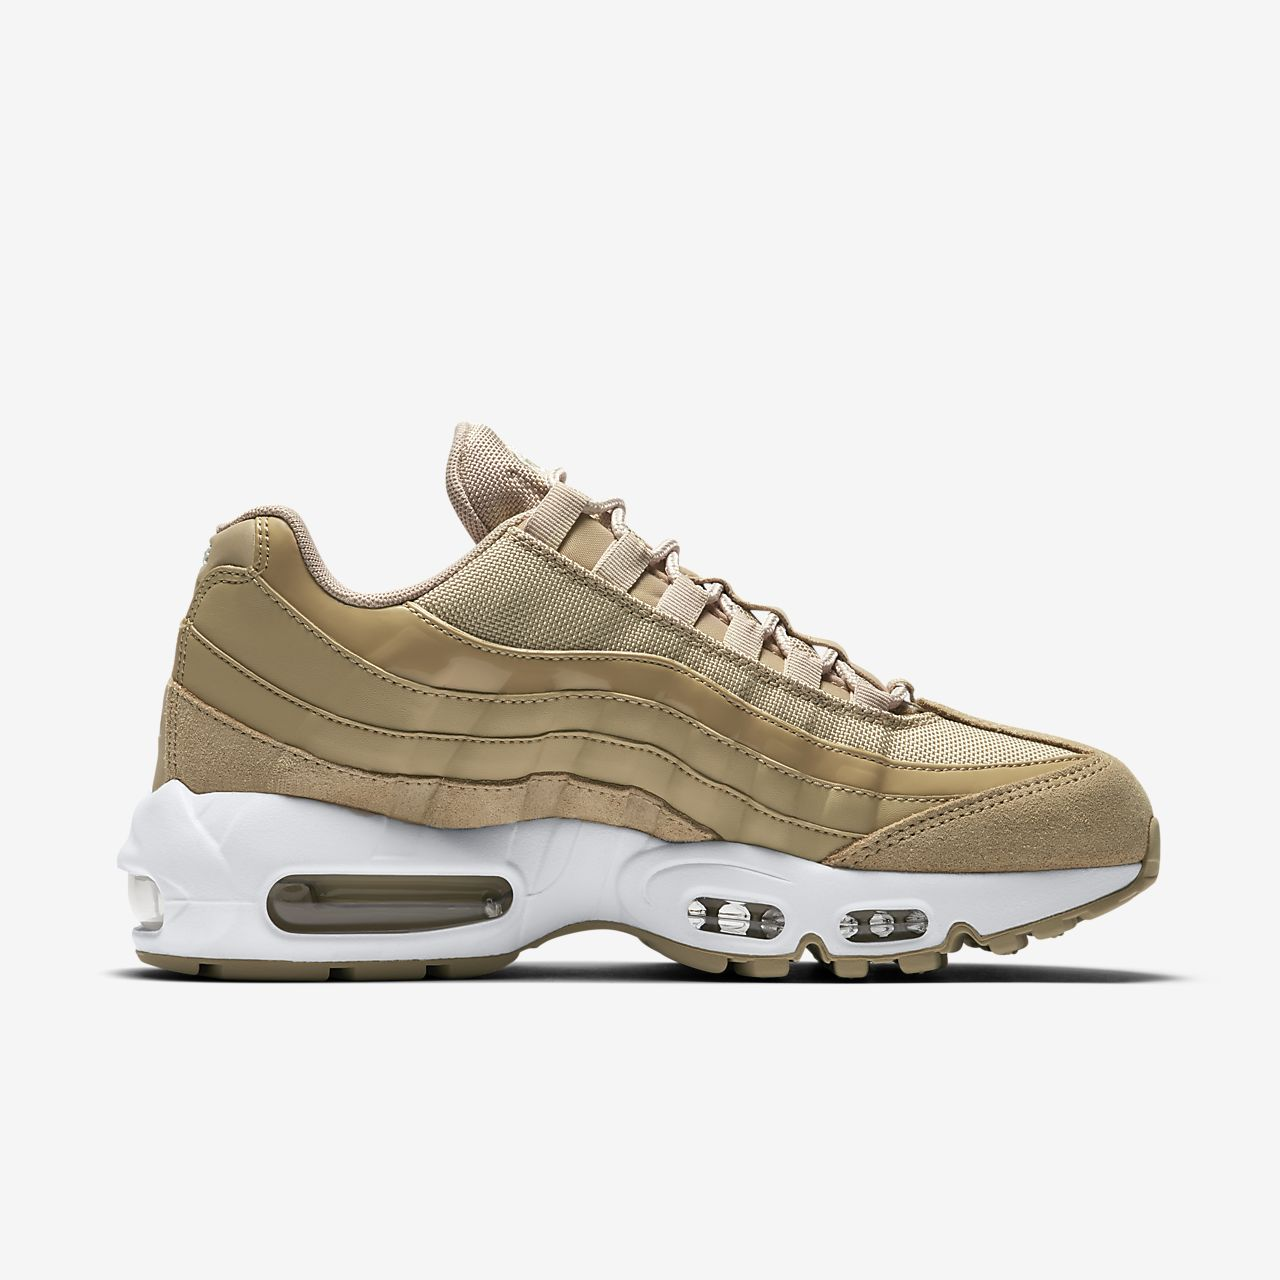 ... Nike Air Max 95 OG – Chaussure pour Femme